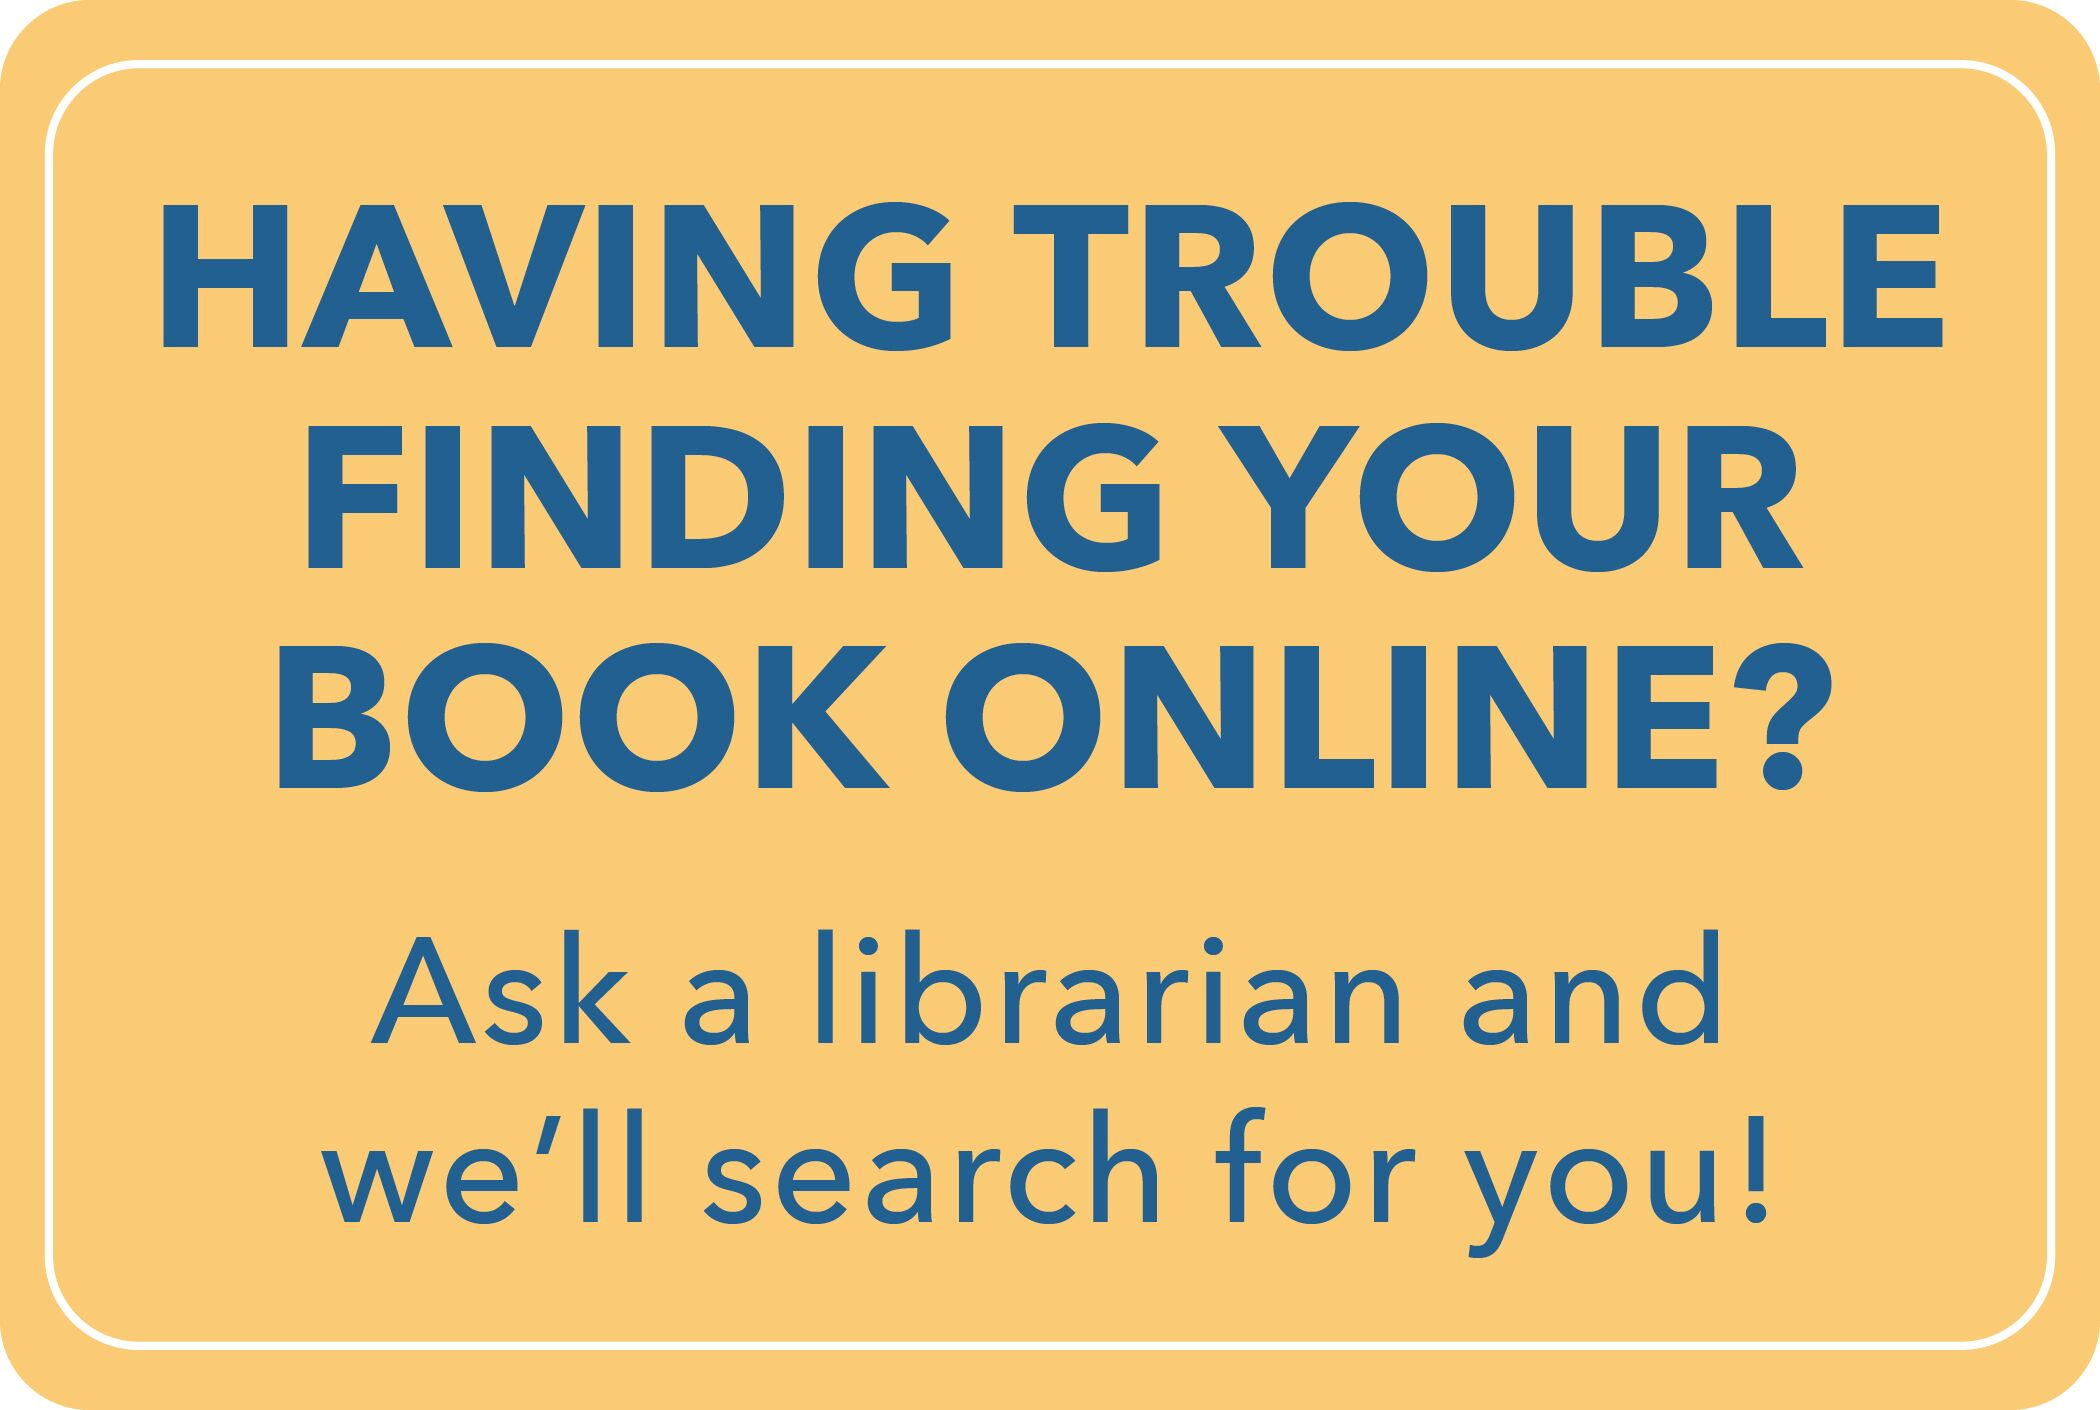 Having trouble finding your book online? Ask a librarian and we'll search for you!